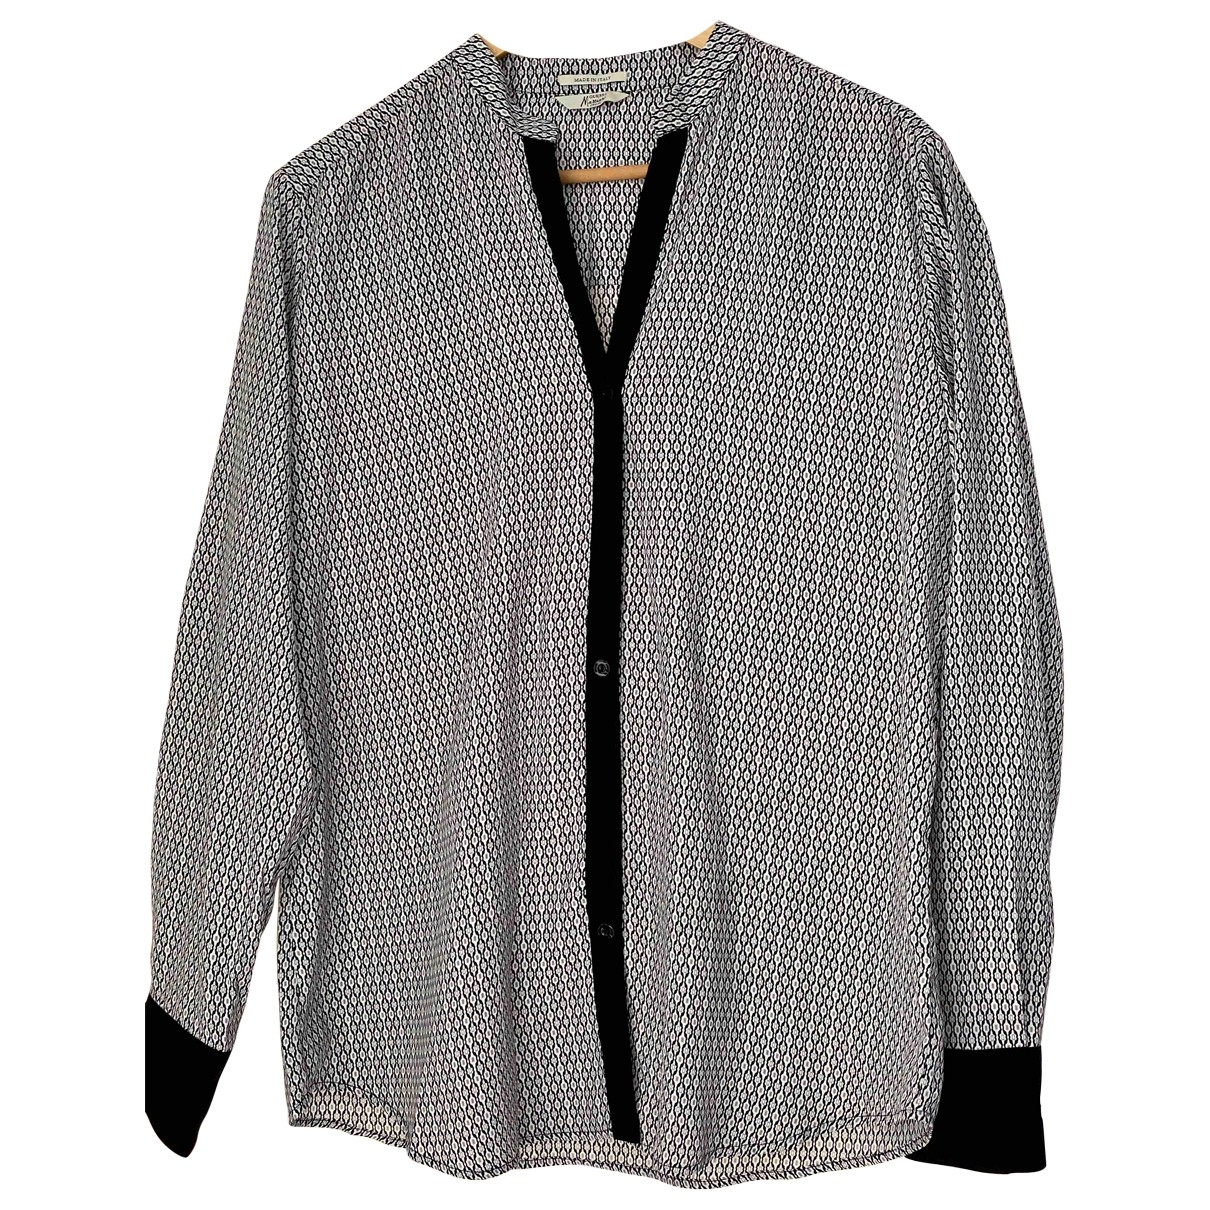 Guess \N  top for Women 46 FR